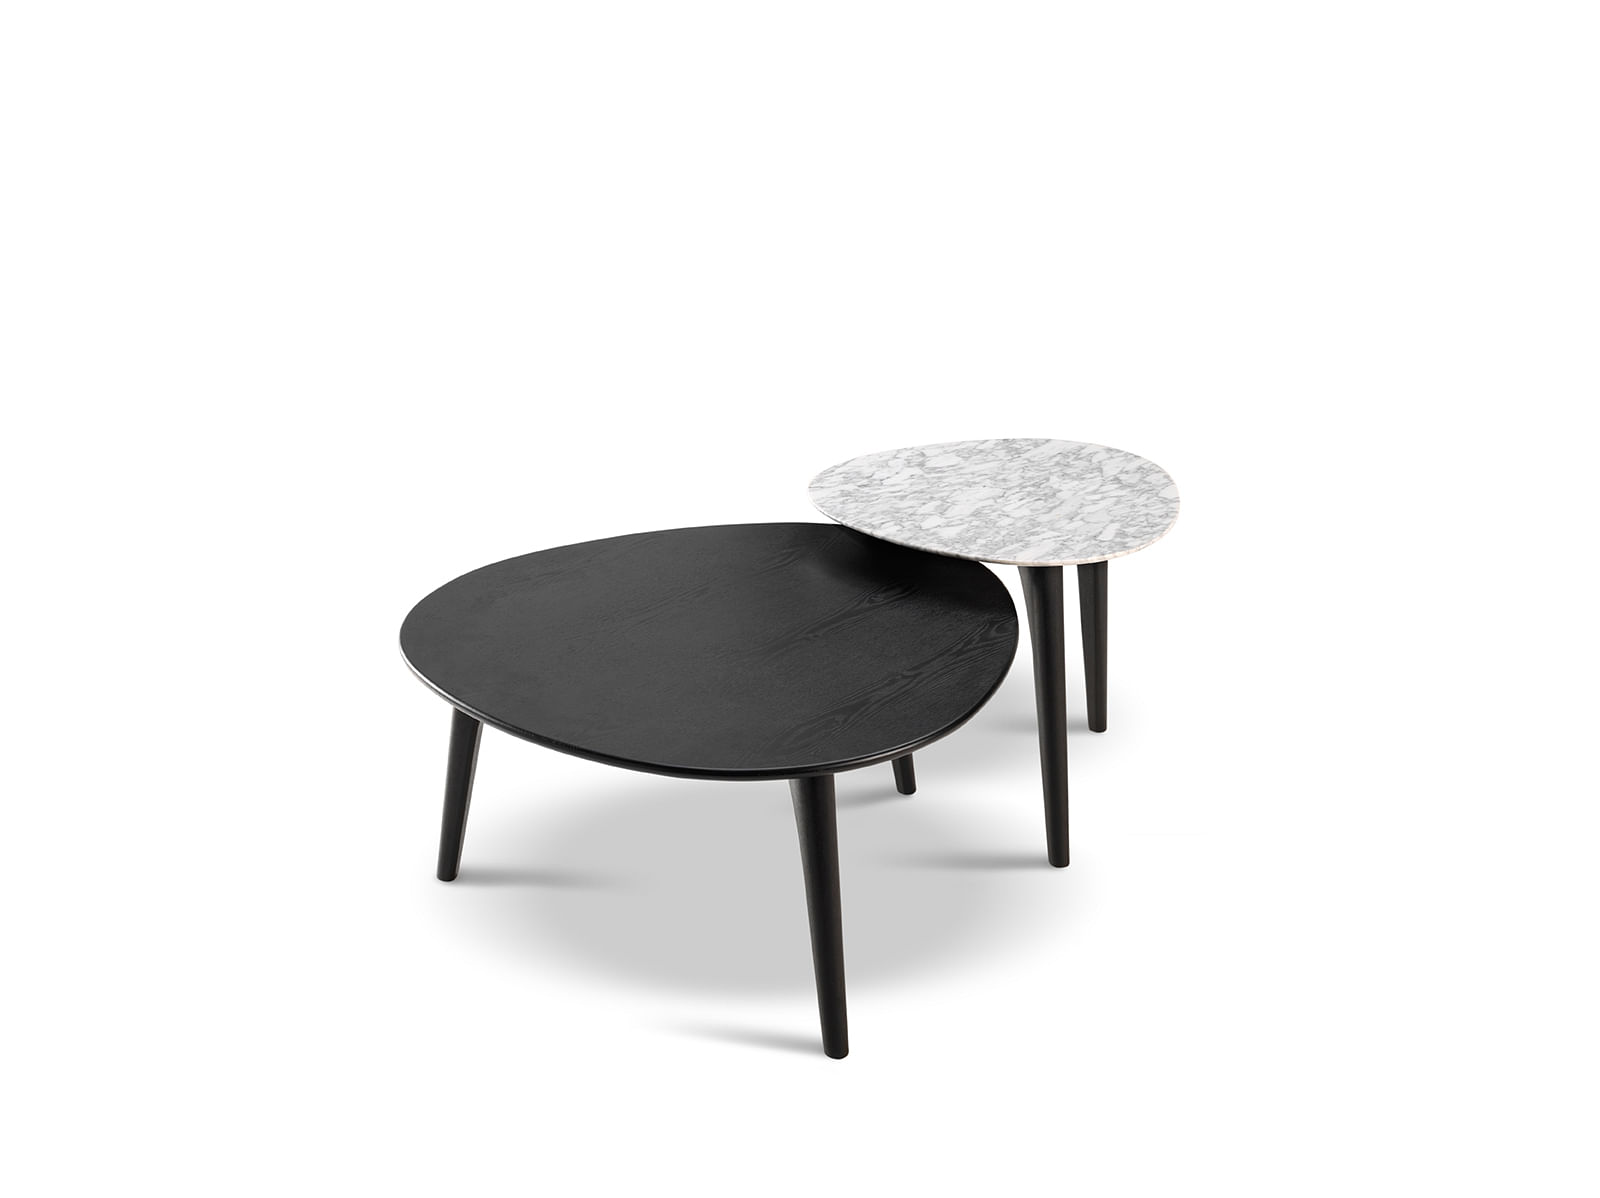 Delightful The Tableu0027s Sleek Curves Give It A Modern Contemporary Look. Shoppers Can  Also Select From A Premium Range Of Fabrics And Leathers For The Crescent  Ottoman, ...